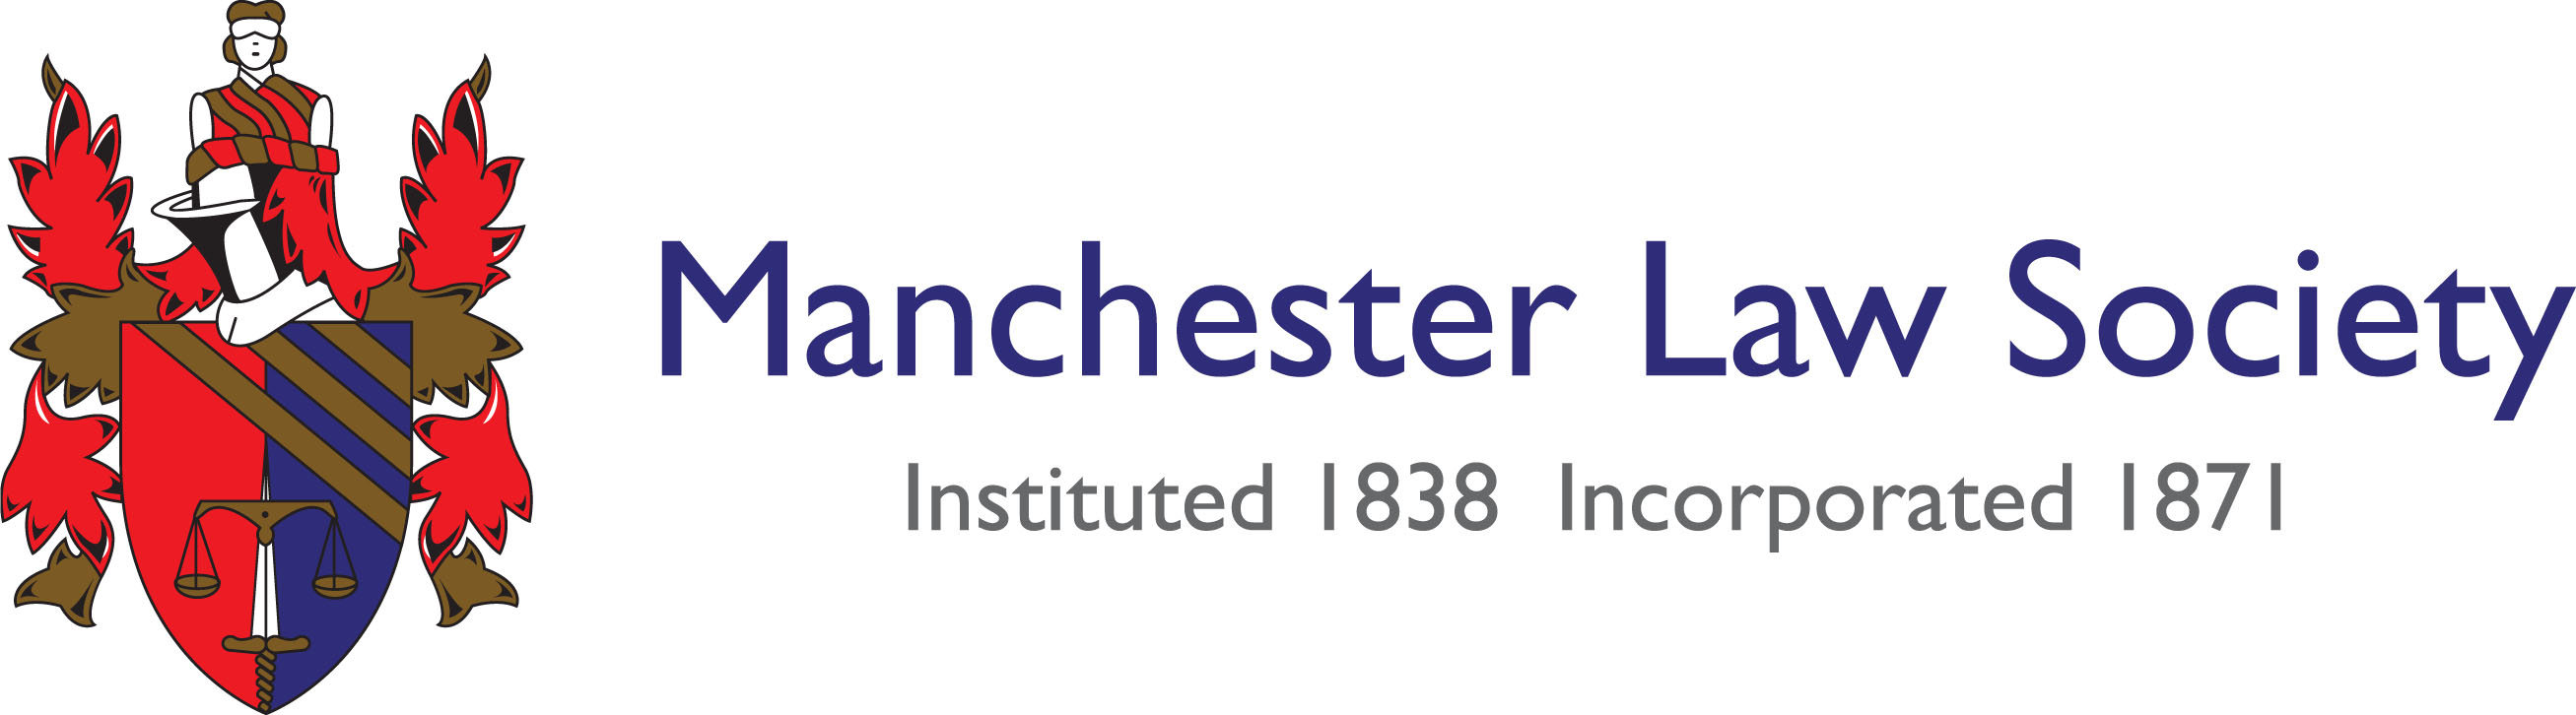 LOGO Manchester Law Society